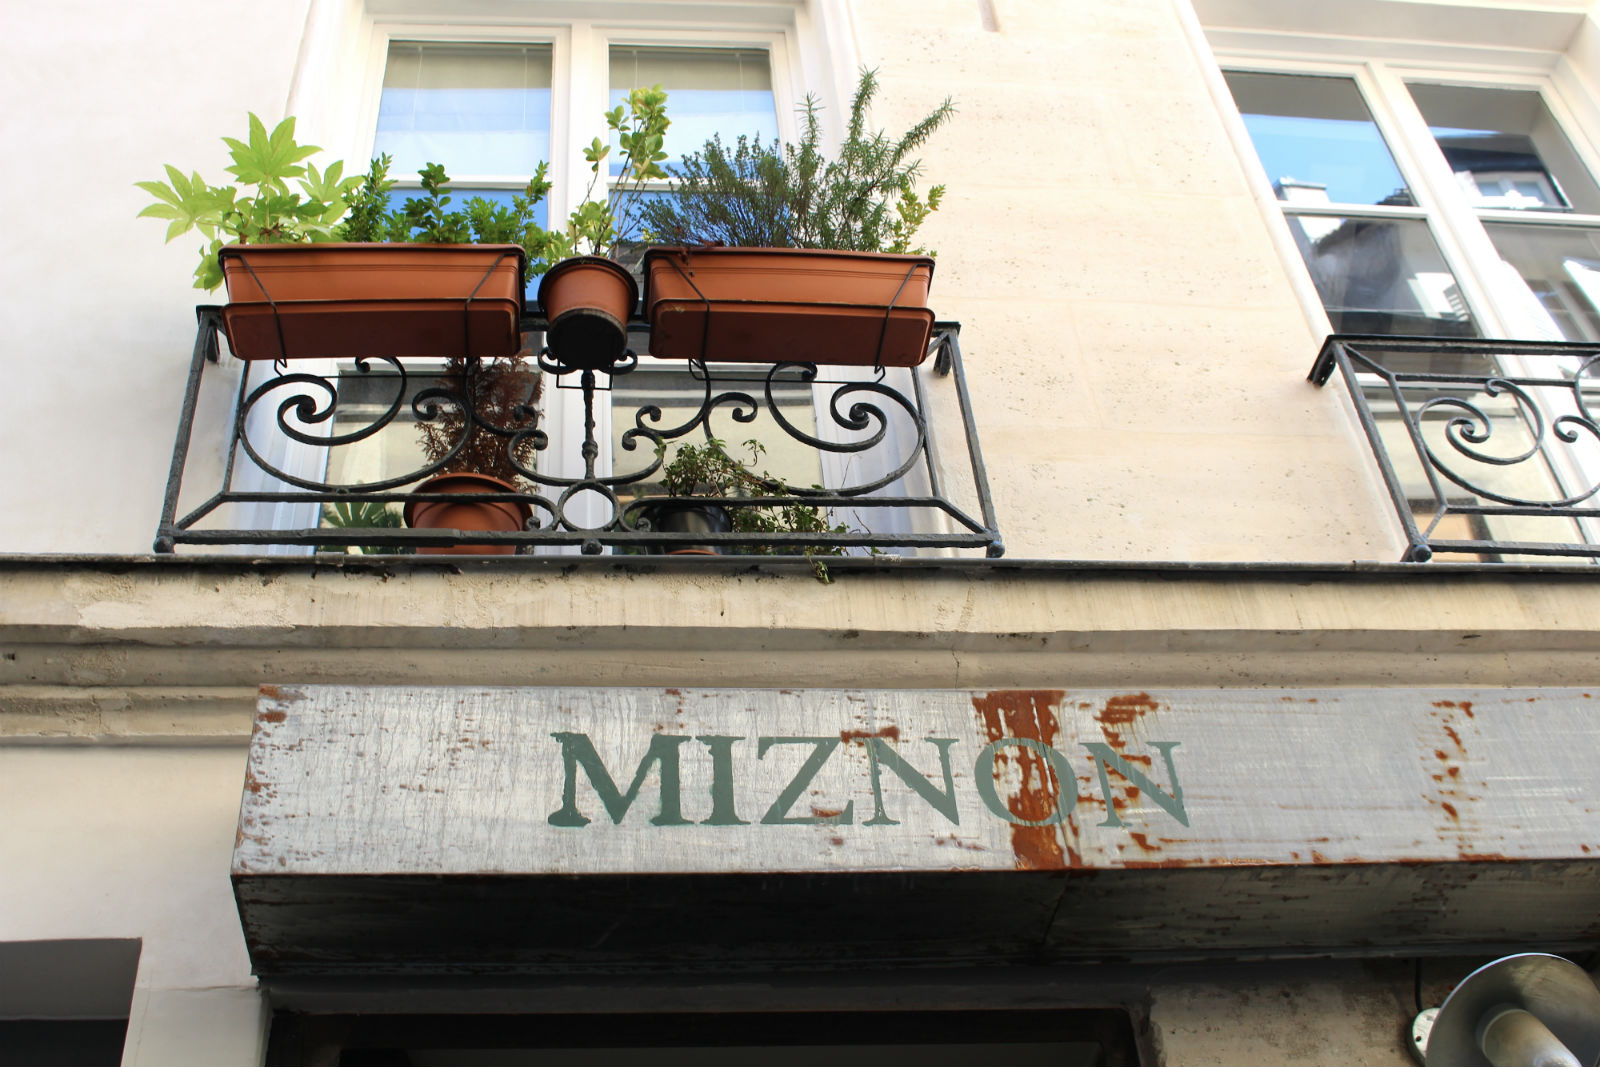 HiP Paris blog. Miznon. Heart of the Marais.